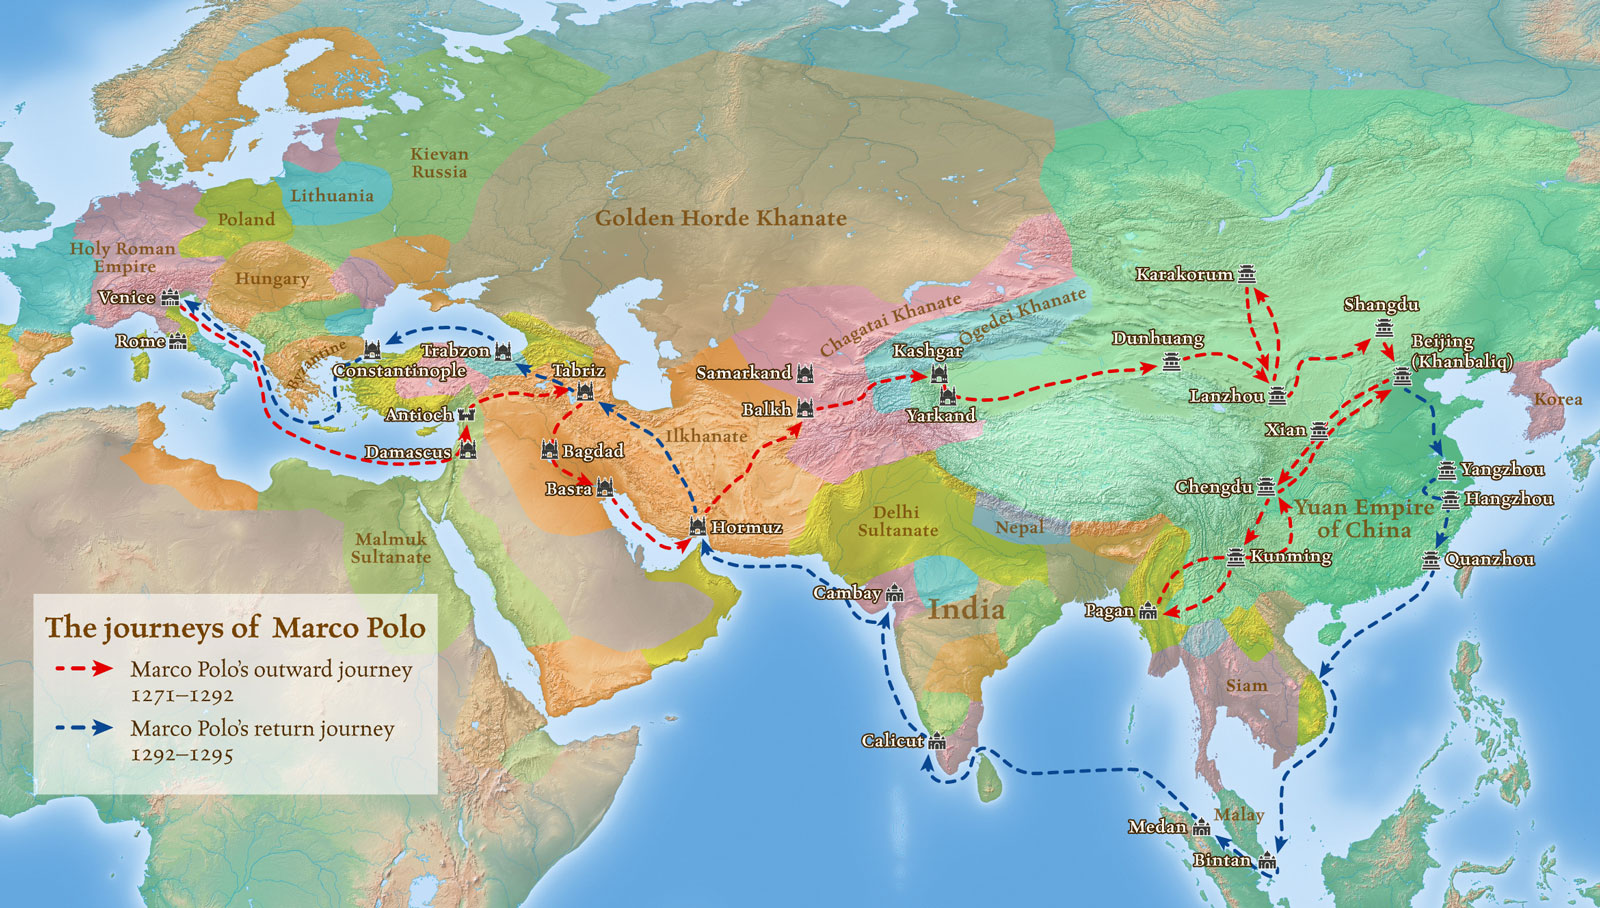 Map of the journeys of  Marco Polo